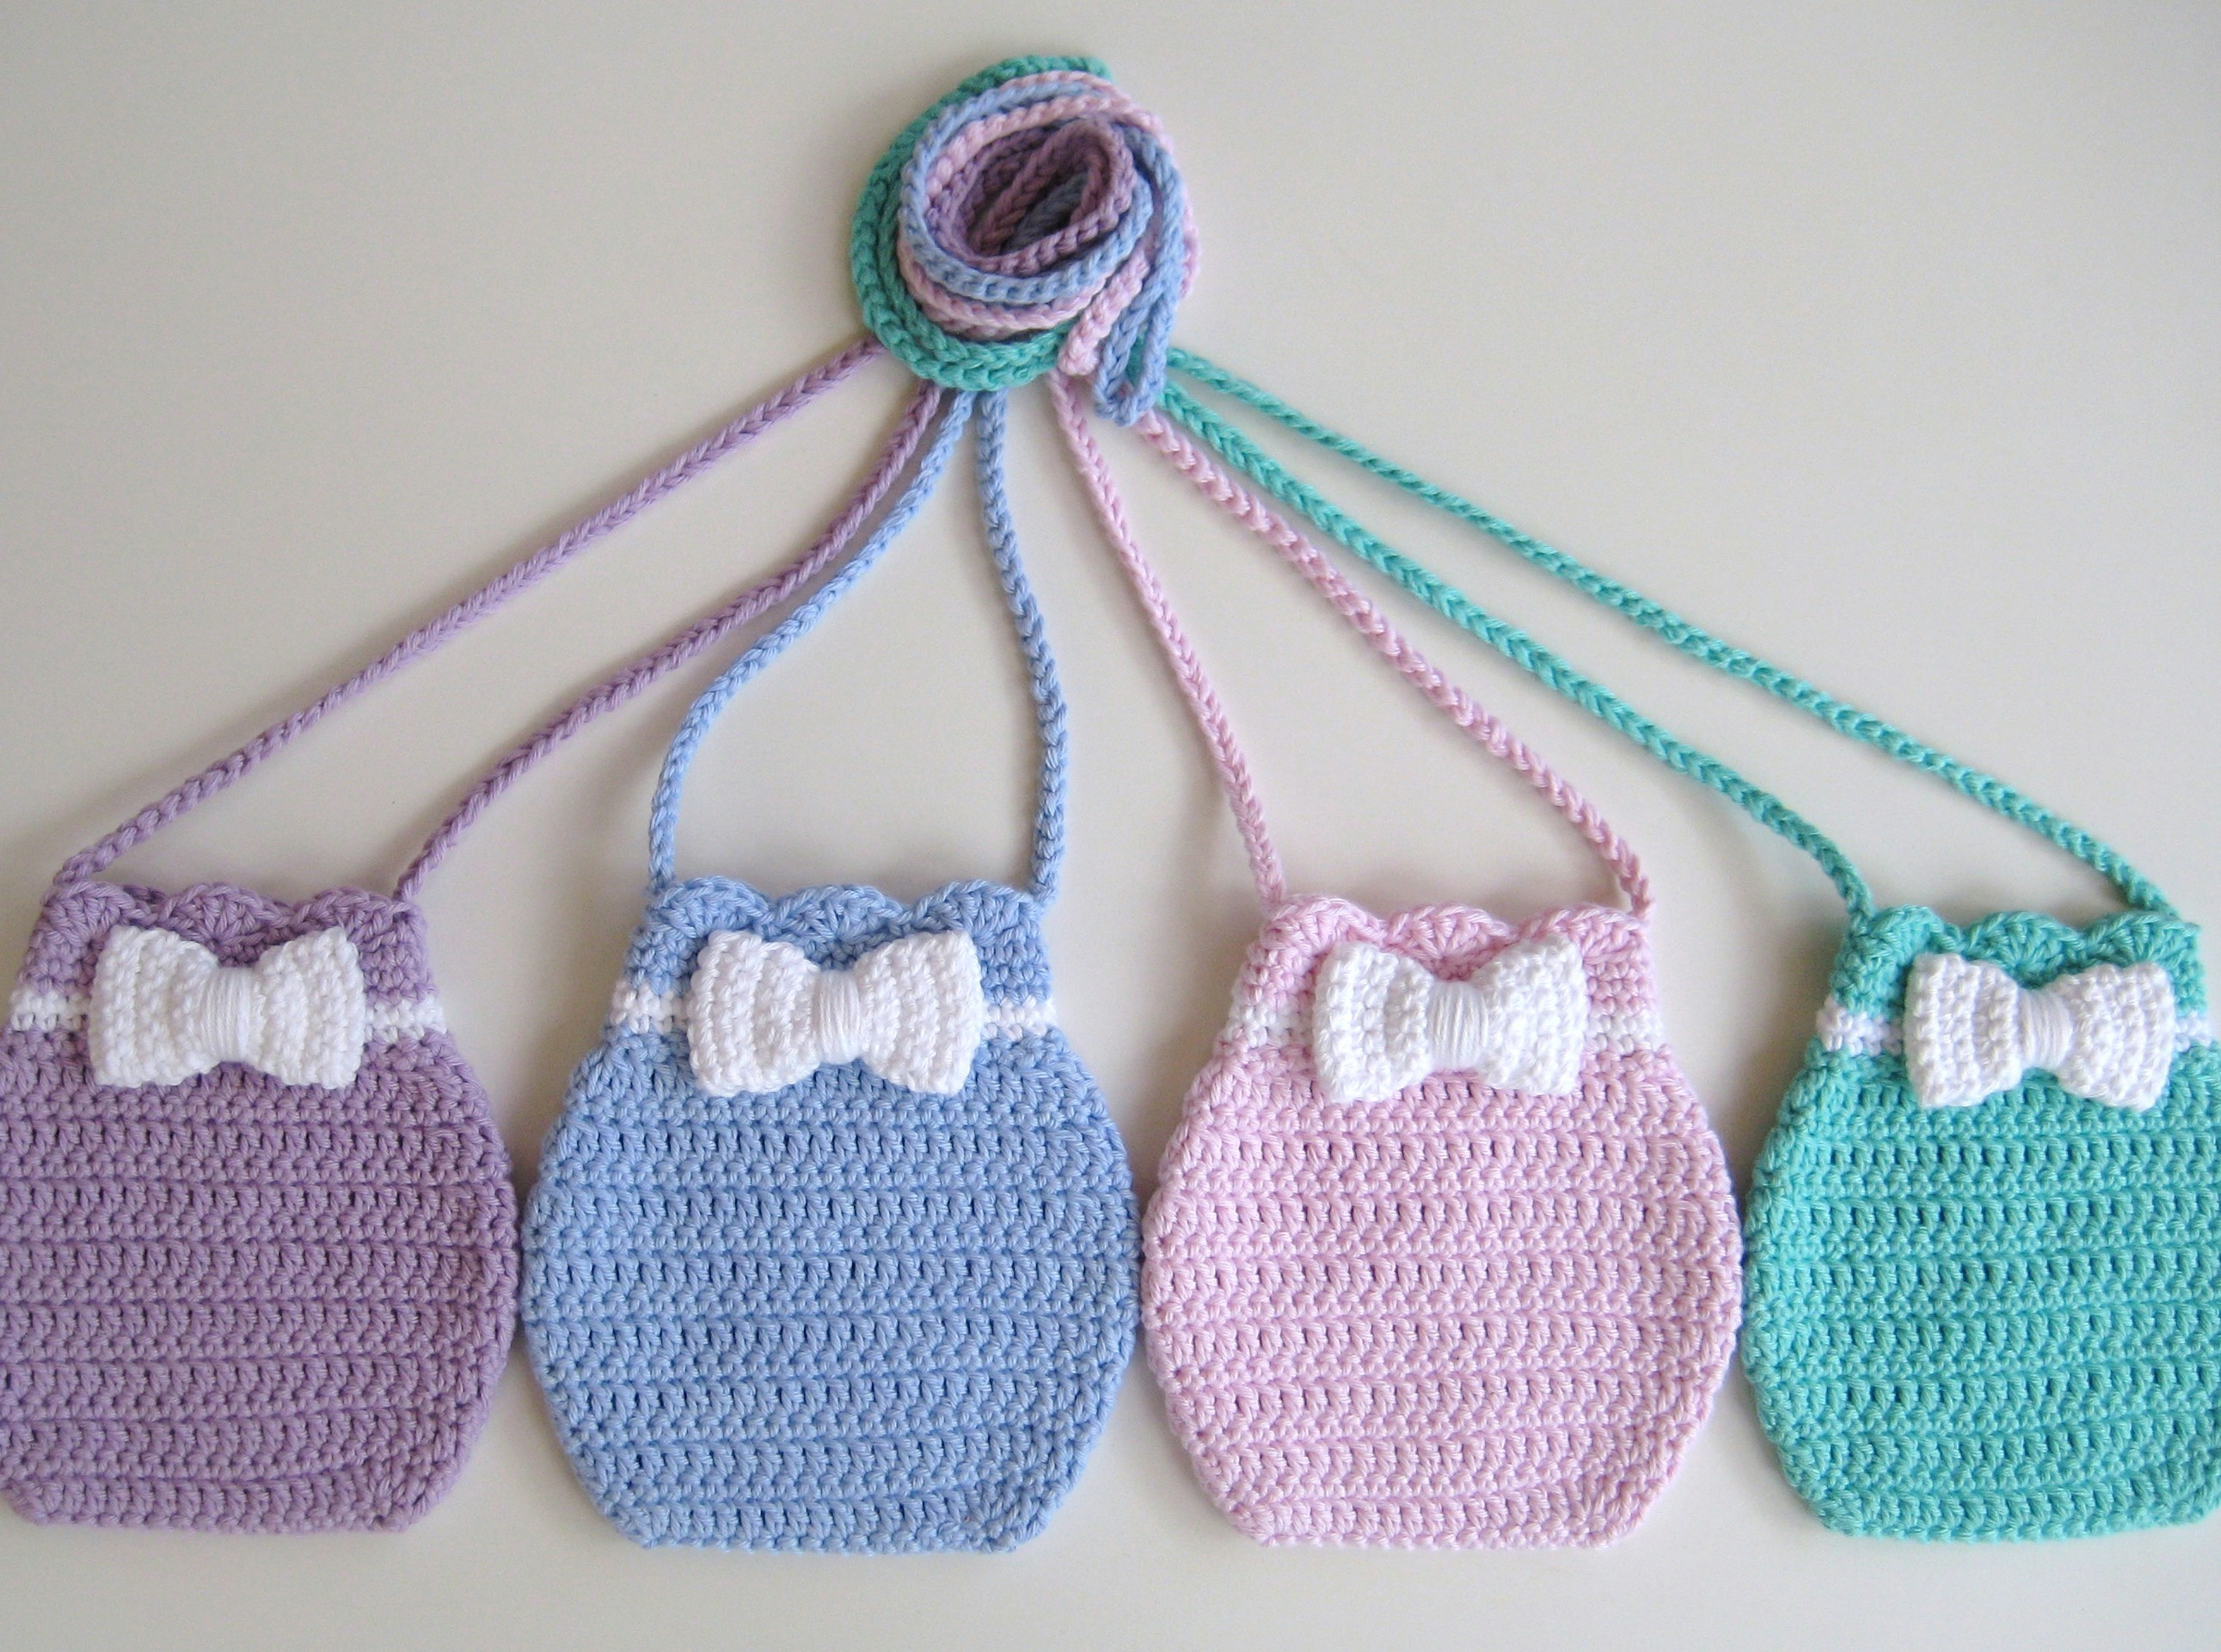 Crochet bag, Bow bag, Pattern No16, in both UK and US crochet terms